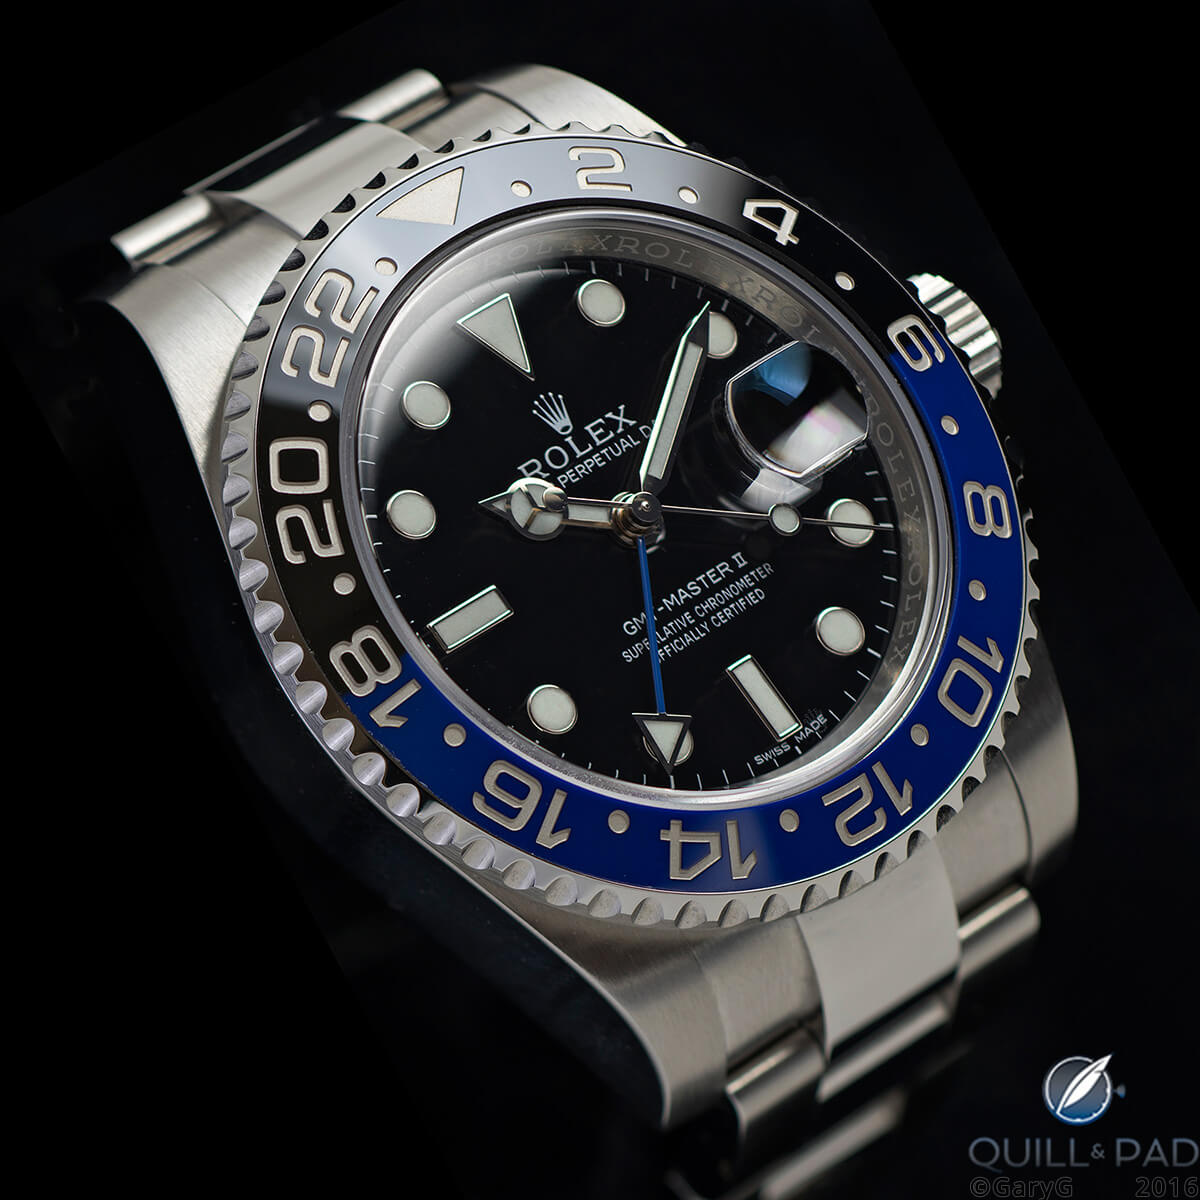 Attractive and robust: Rolex GMT Master II BLNR